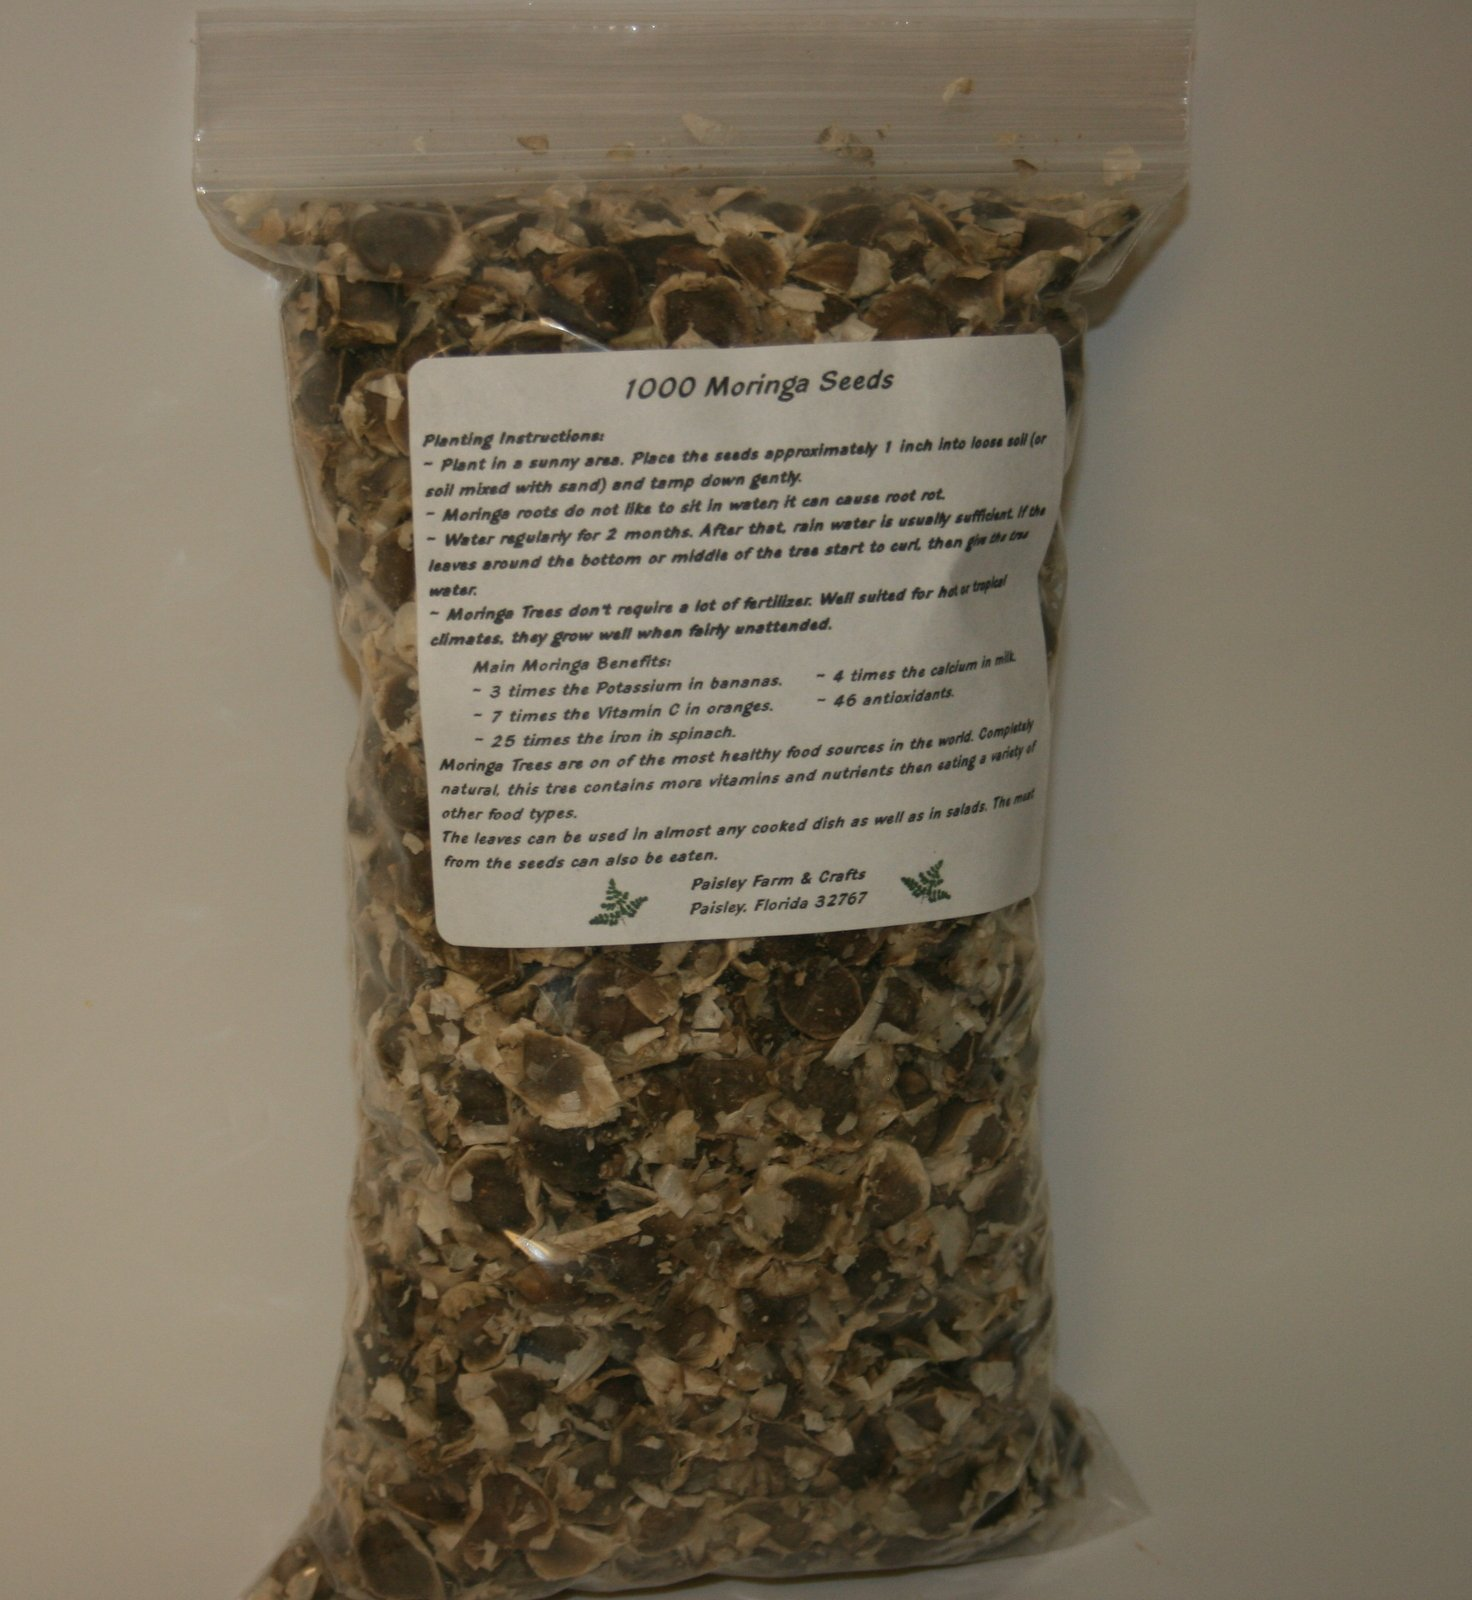 10,000 Moringa Oleifera Seeds - US Customs Cleared - Distributed by Paisley Farm, FL